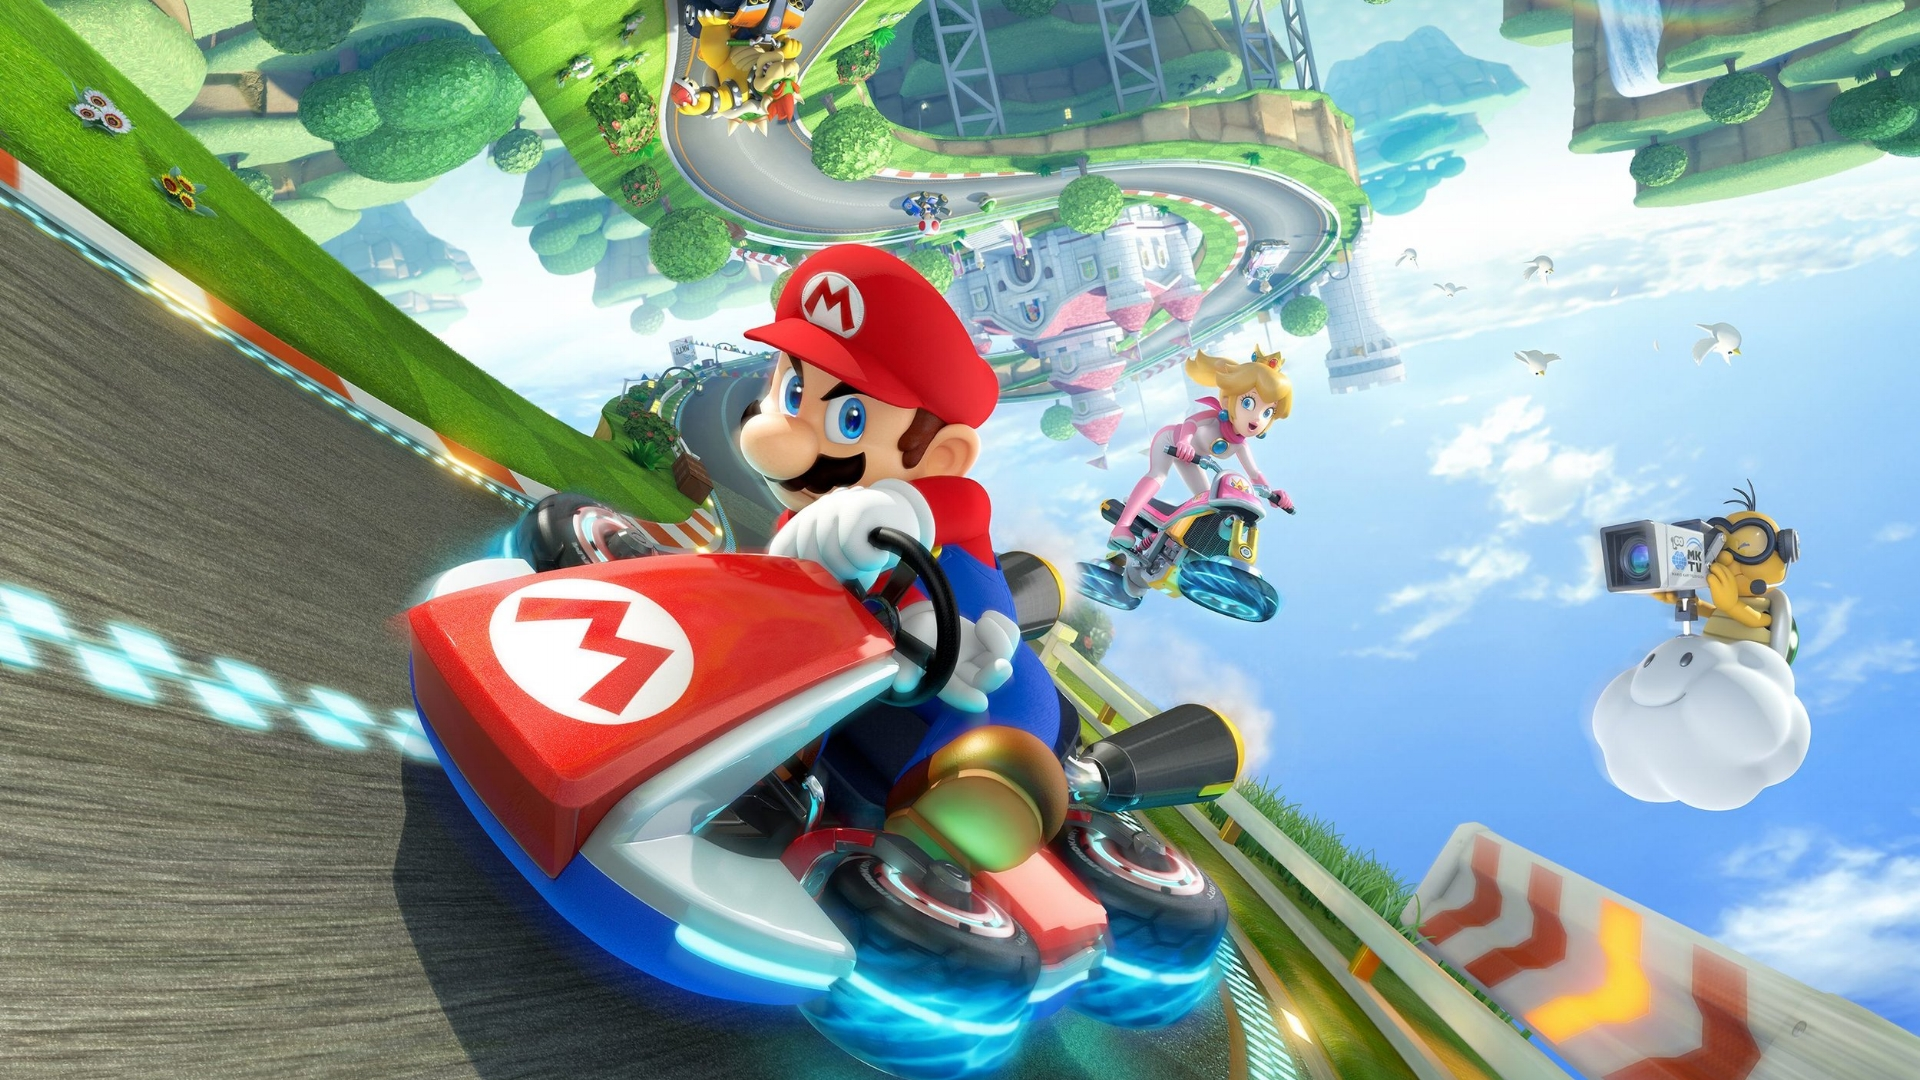 Full-speed fun… - The long-running kart racing series from Nintendo hits a series high in its eighth entry.